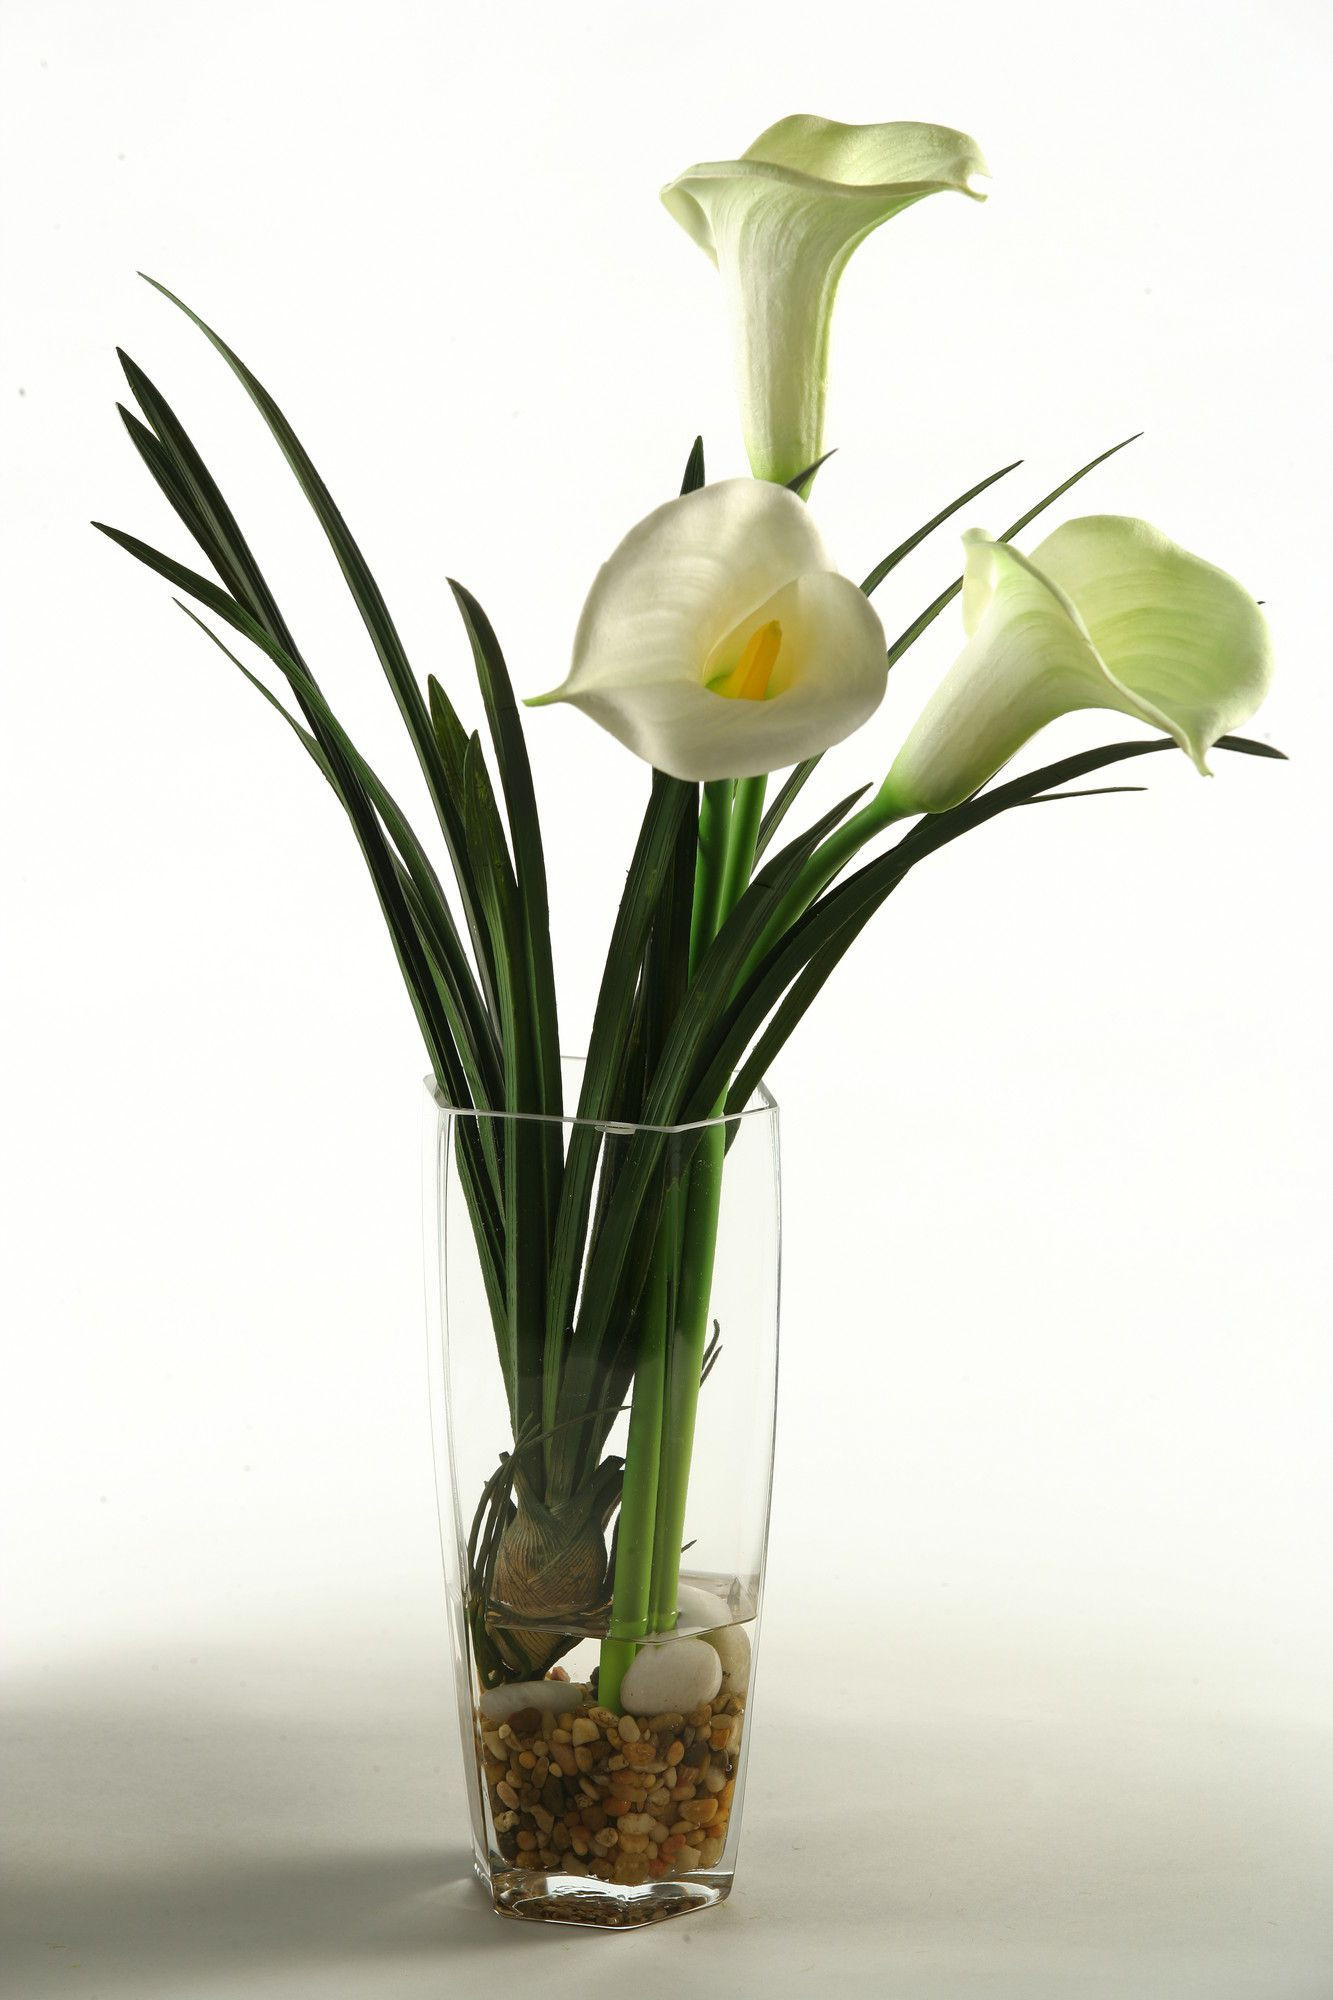 white calla lilies in vase of calla lilies in glass vase products pinterest calla lilies and regarding calla lilies in glass vase